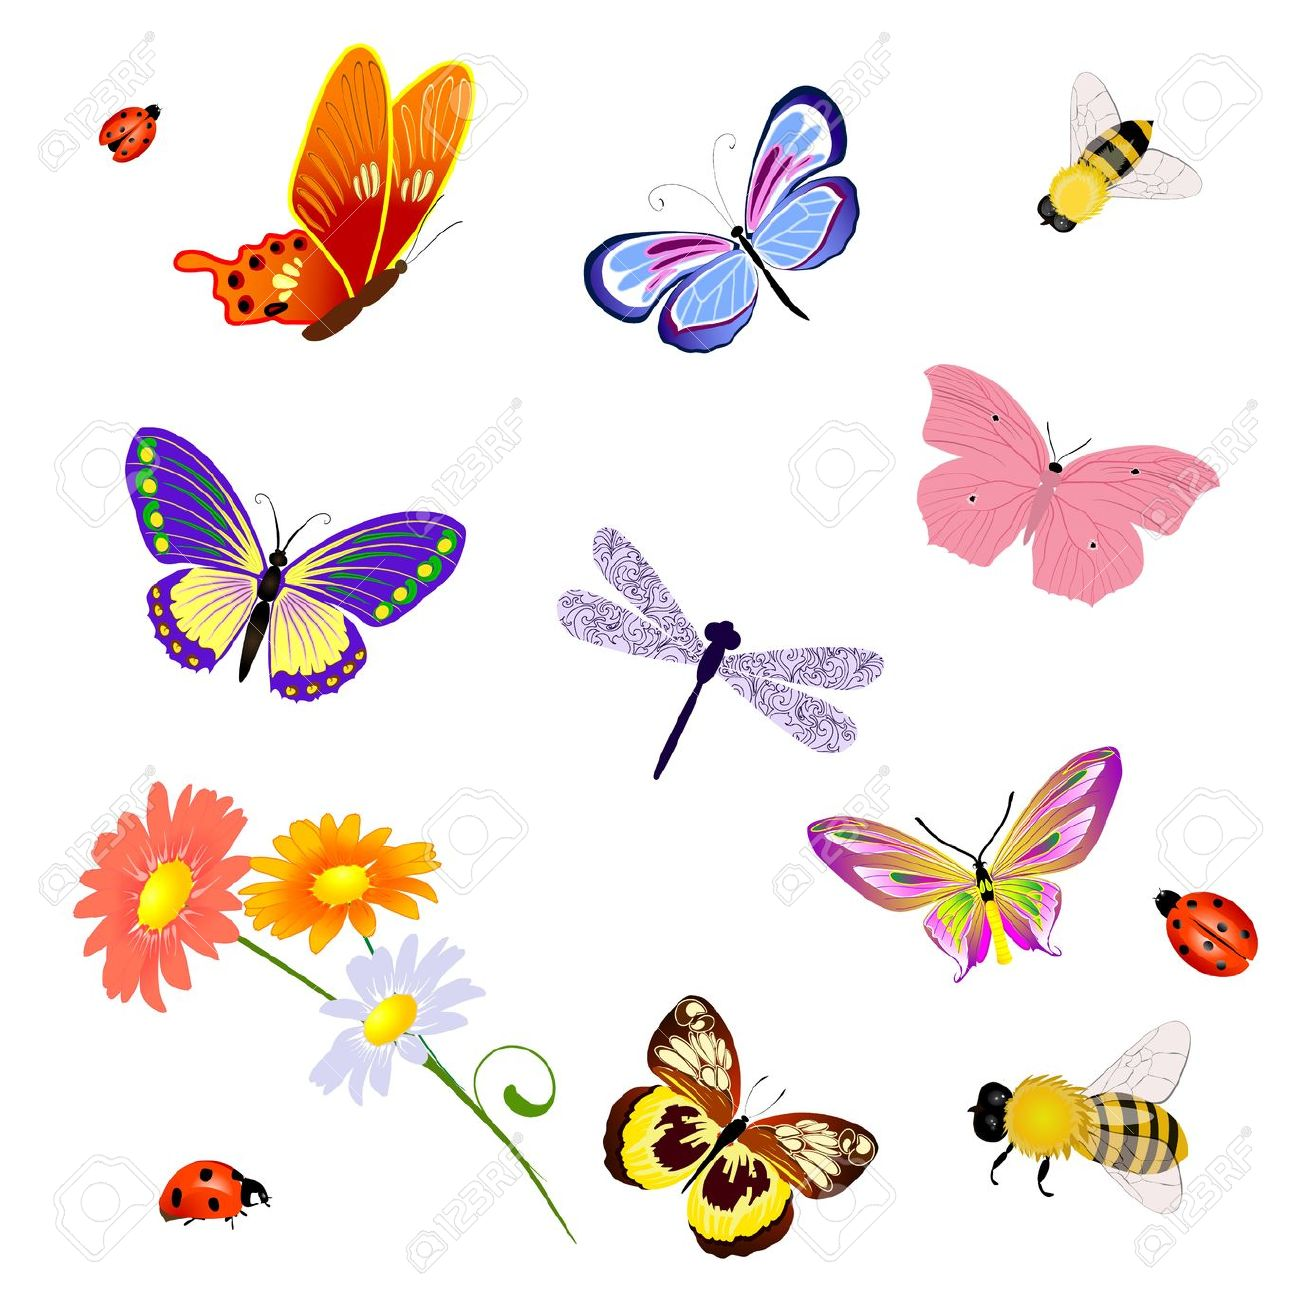 Bees And Butterflies Clipart.